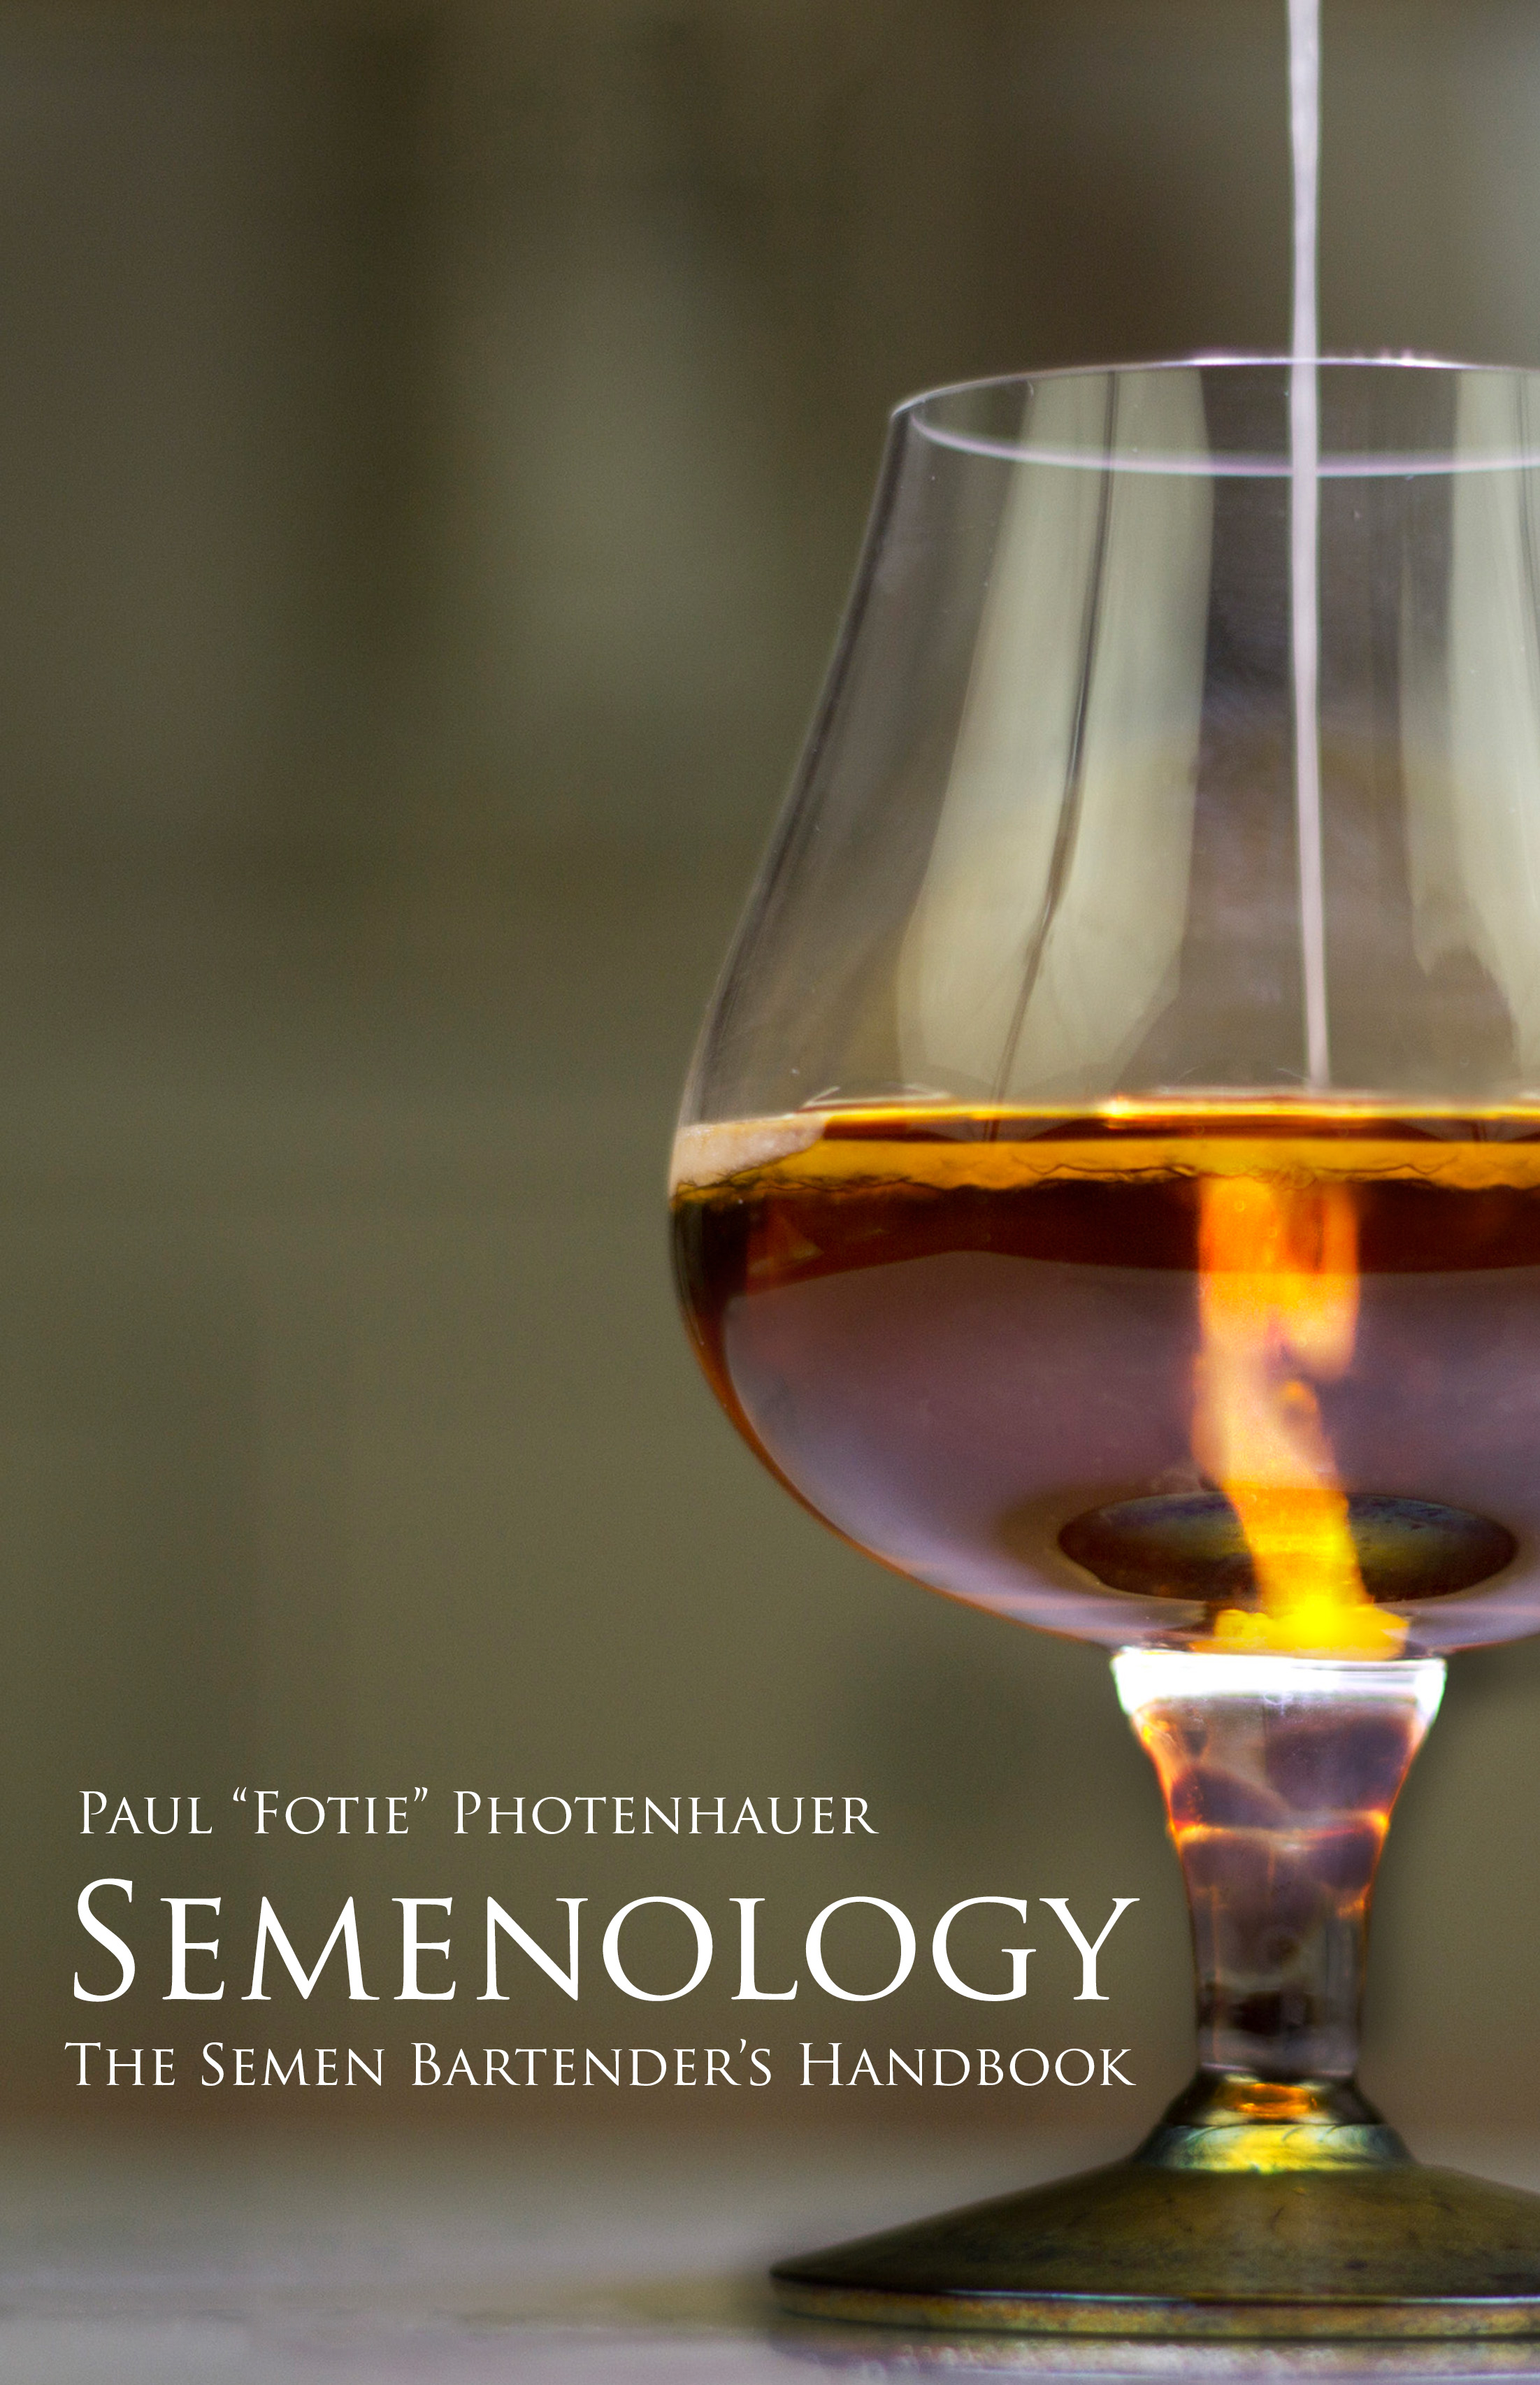 New Book — Semenology: The Semen Bartender's Handbook